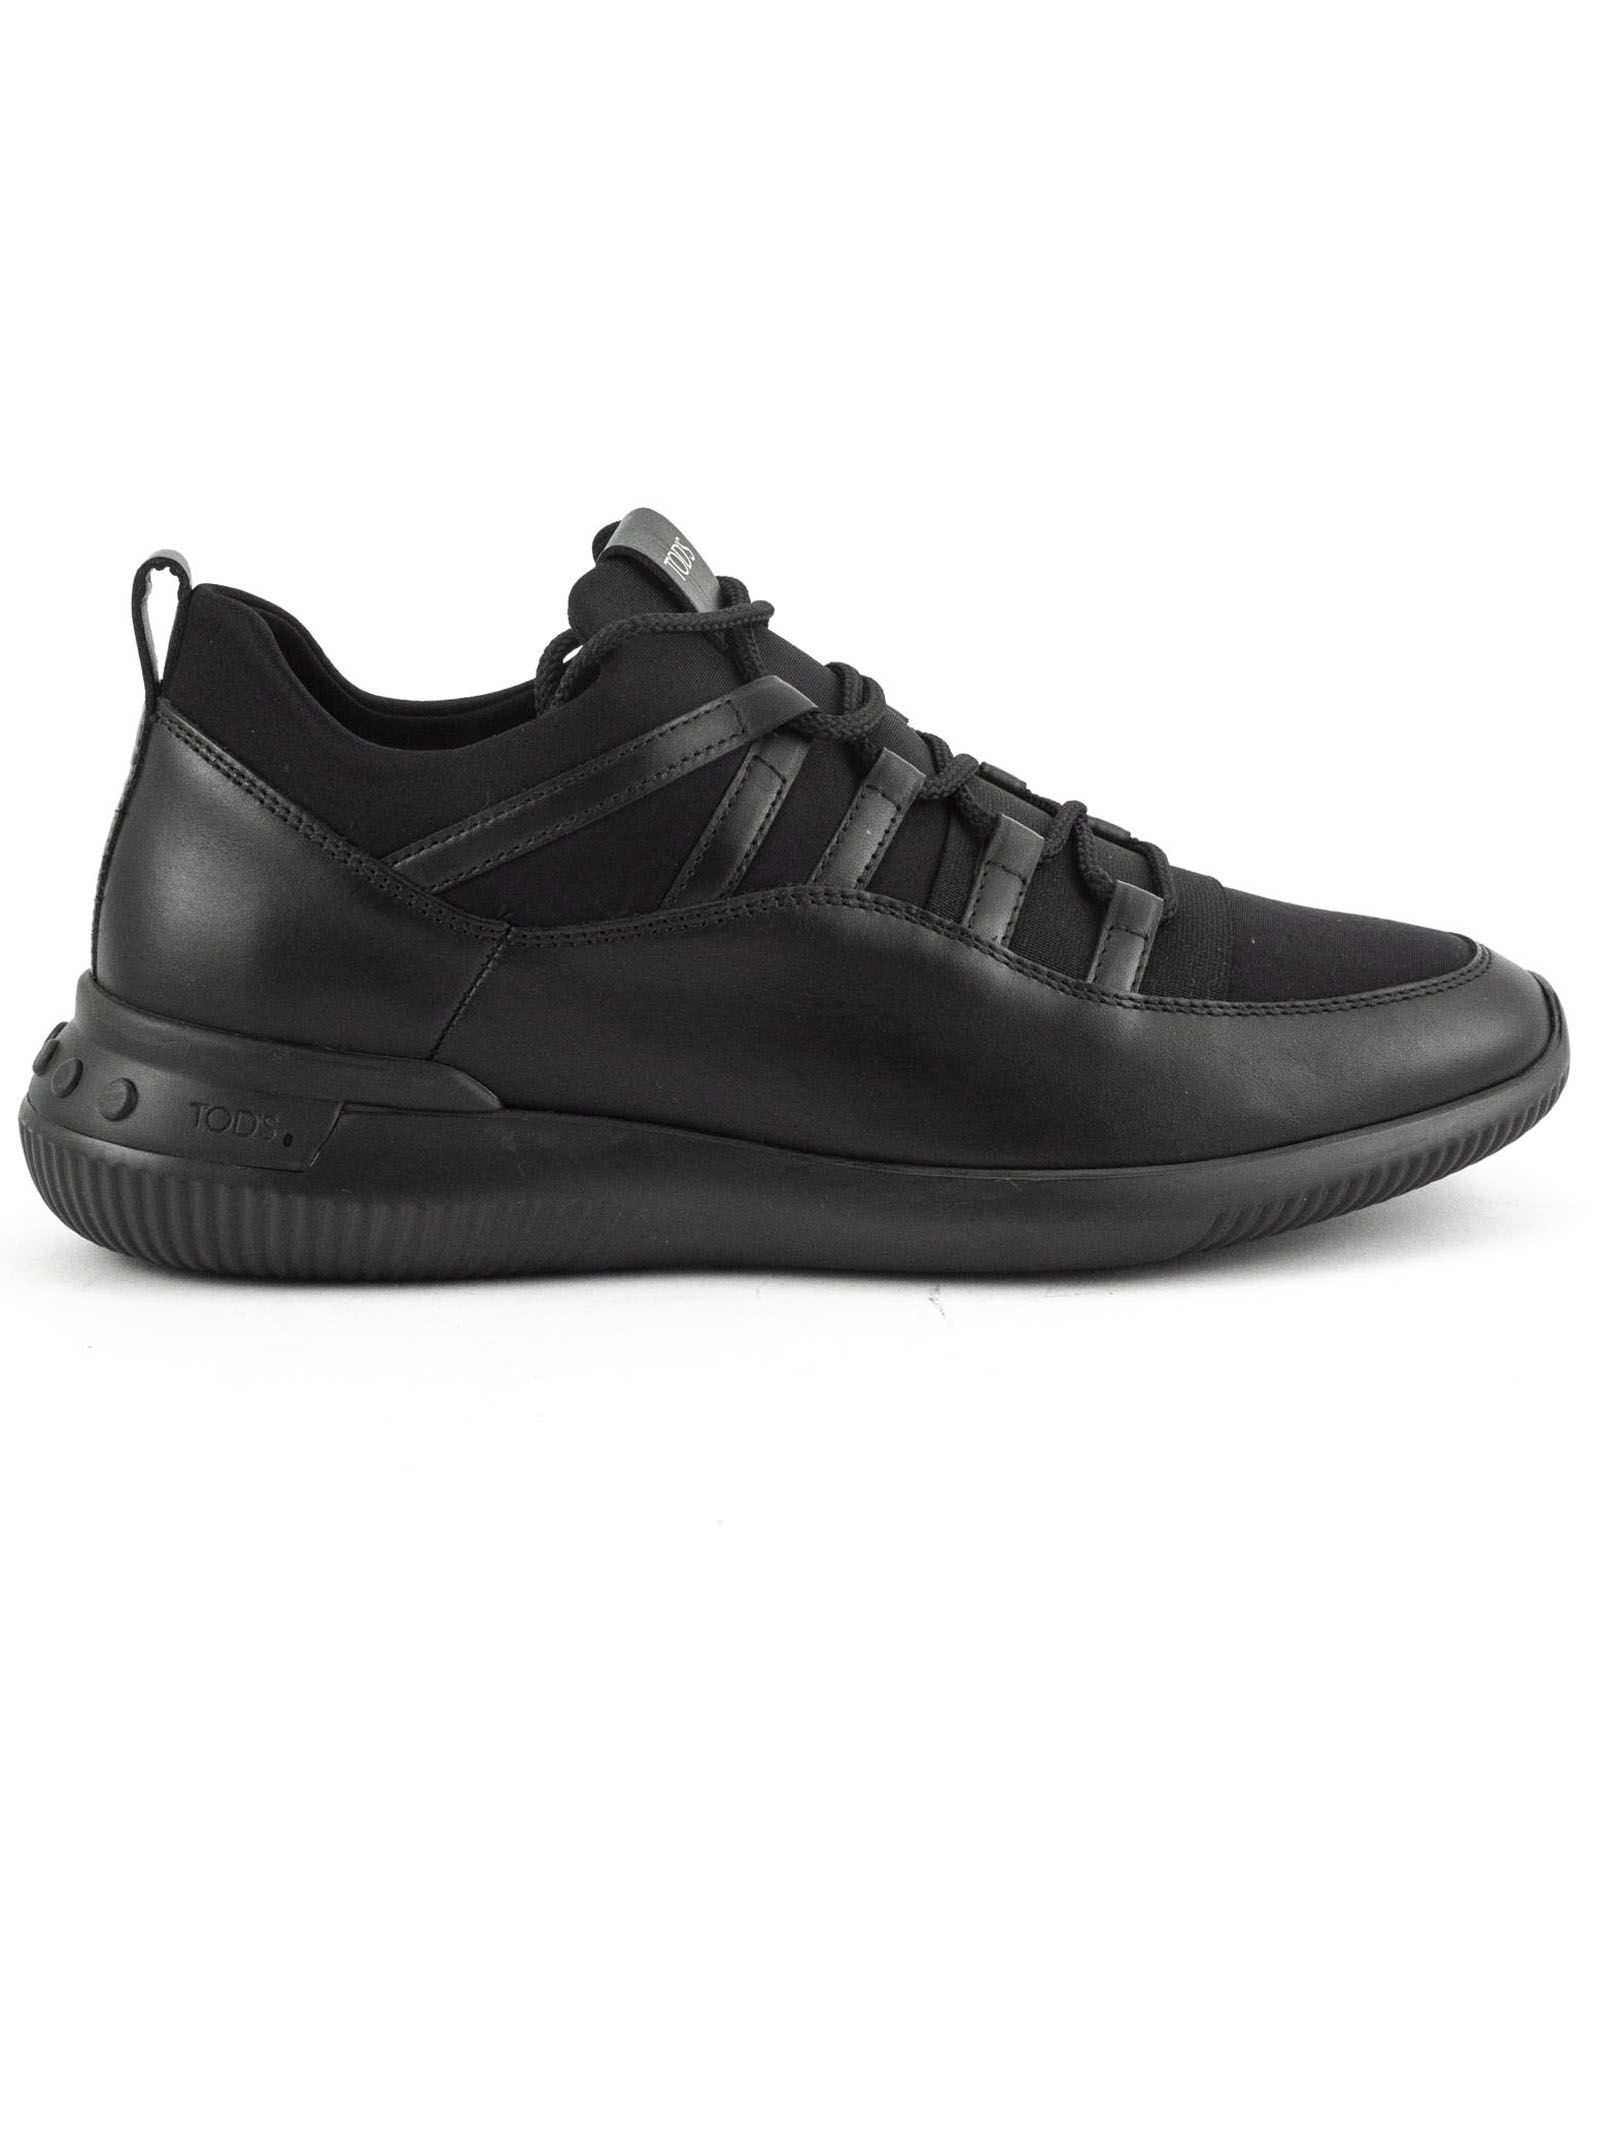 Tod's Shoeker No code 01 In Leather And Scuba Fabric